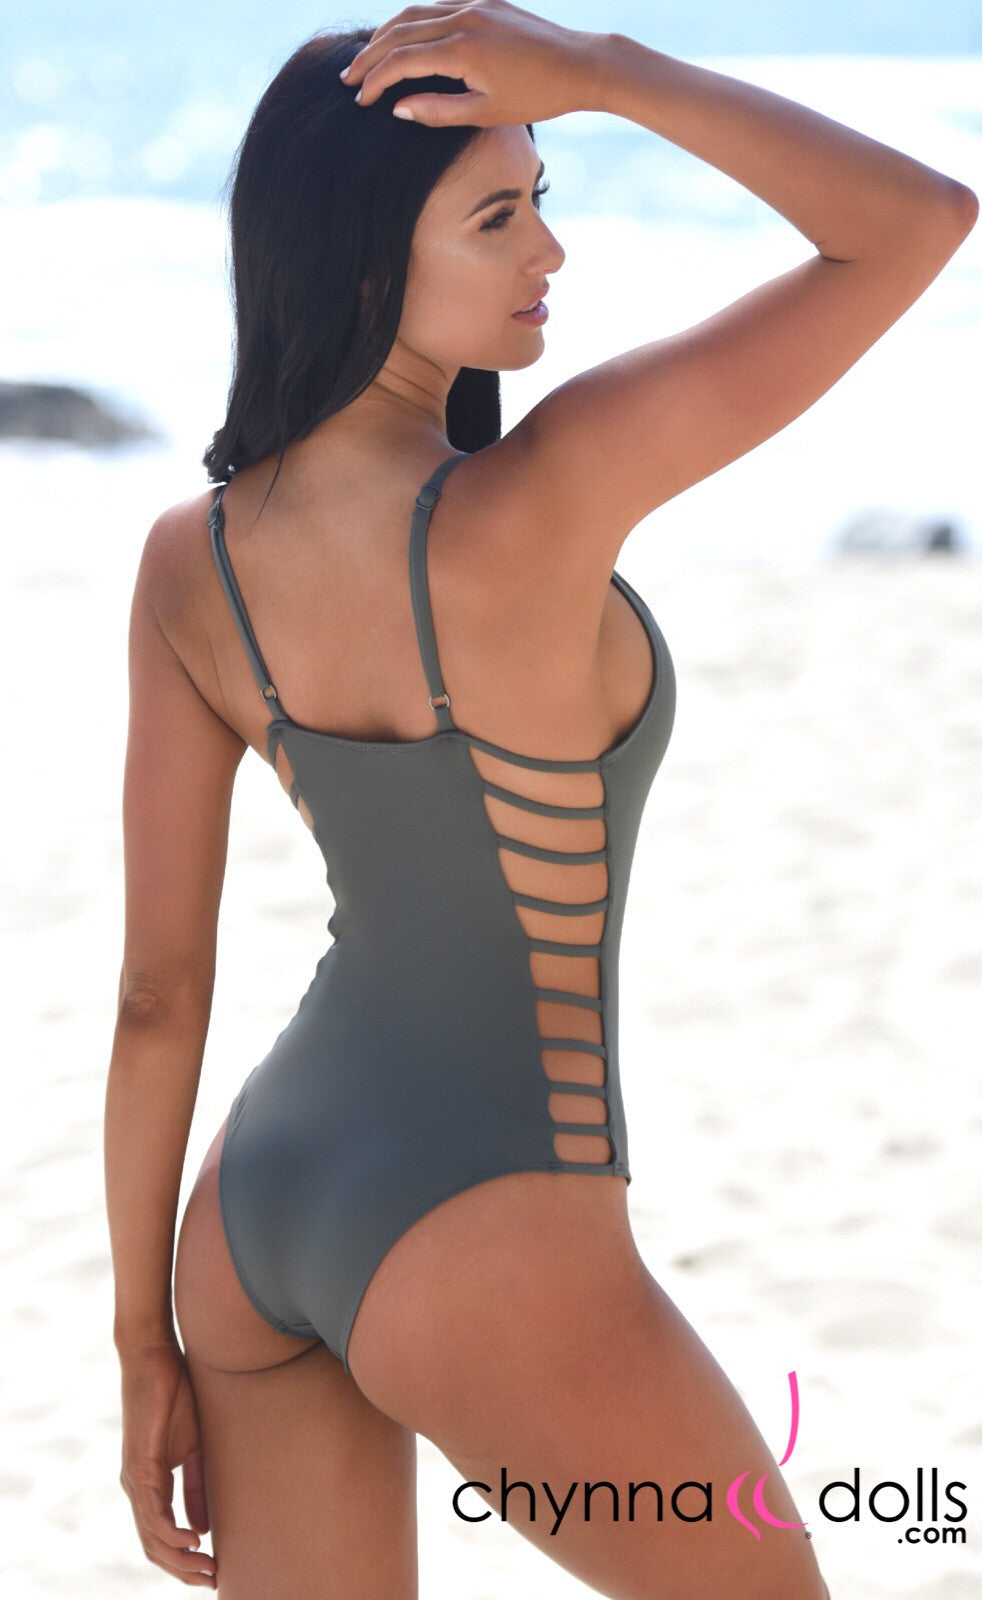 Tuscany: One Piece w/ Ladder Details in Stone Gray - Chynna Dolls Swimwear